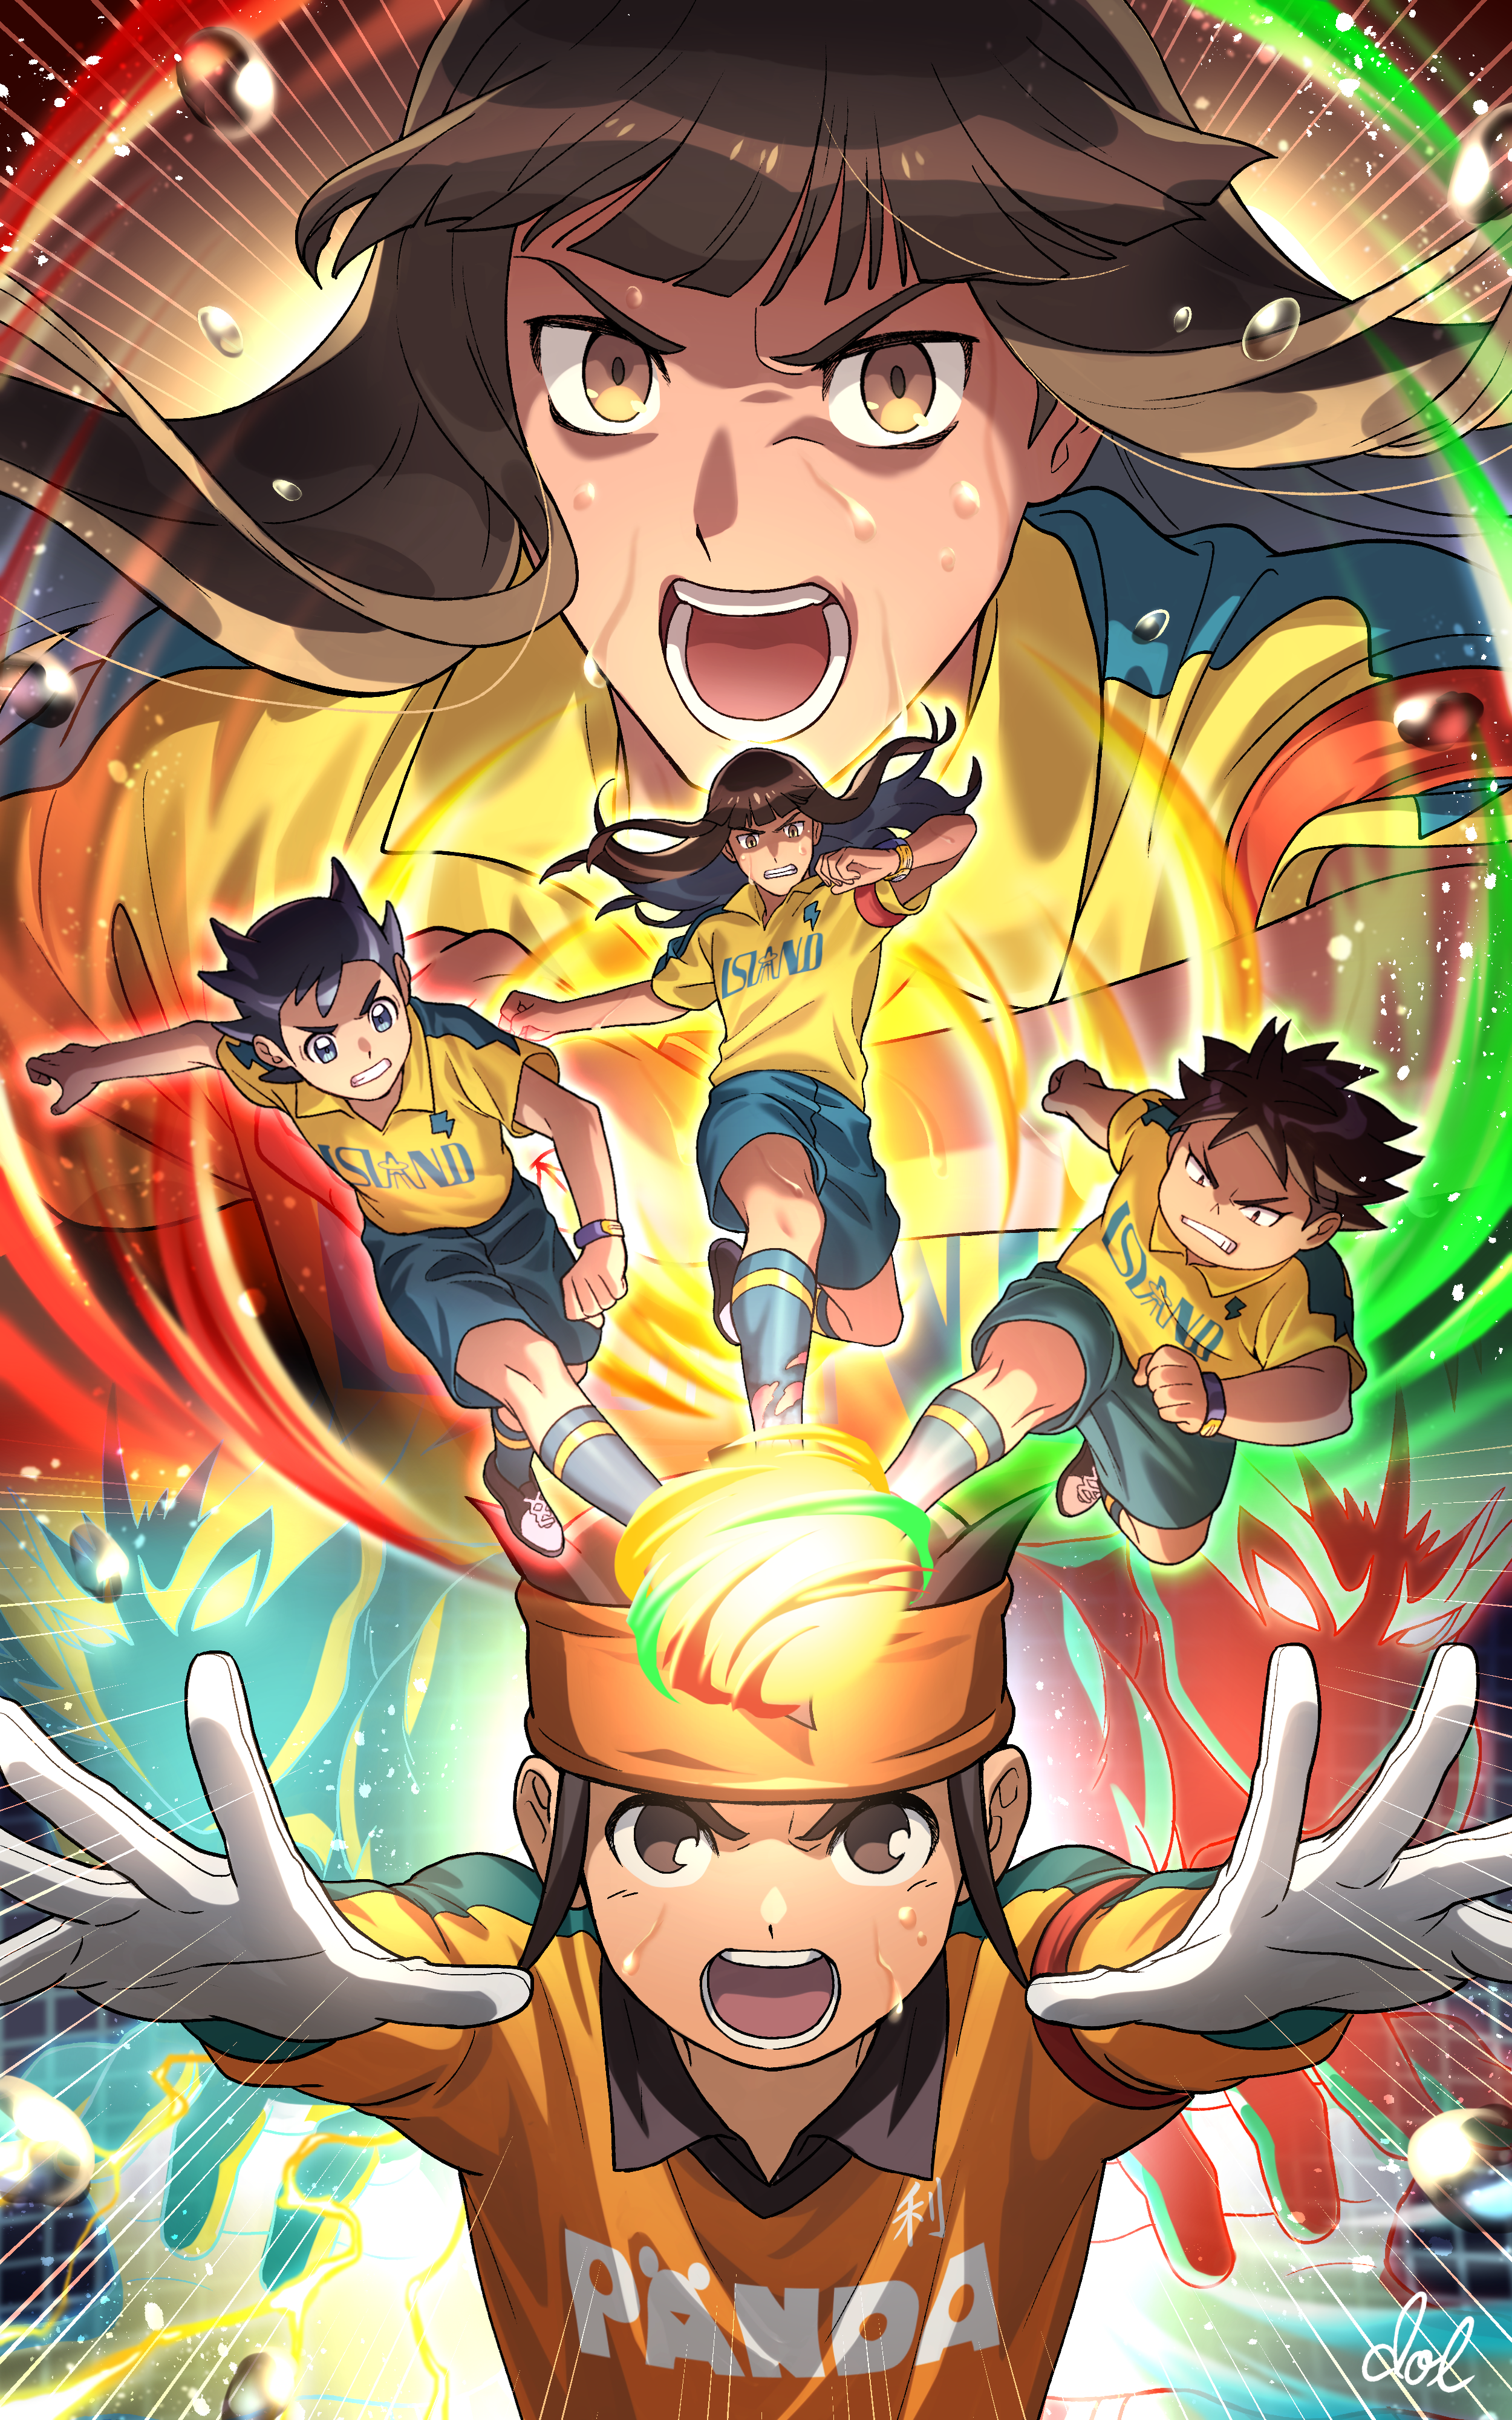 Pin by Joud on Inazuma Eleven Eleventh, Anime, Ares